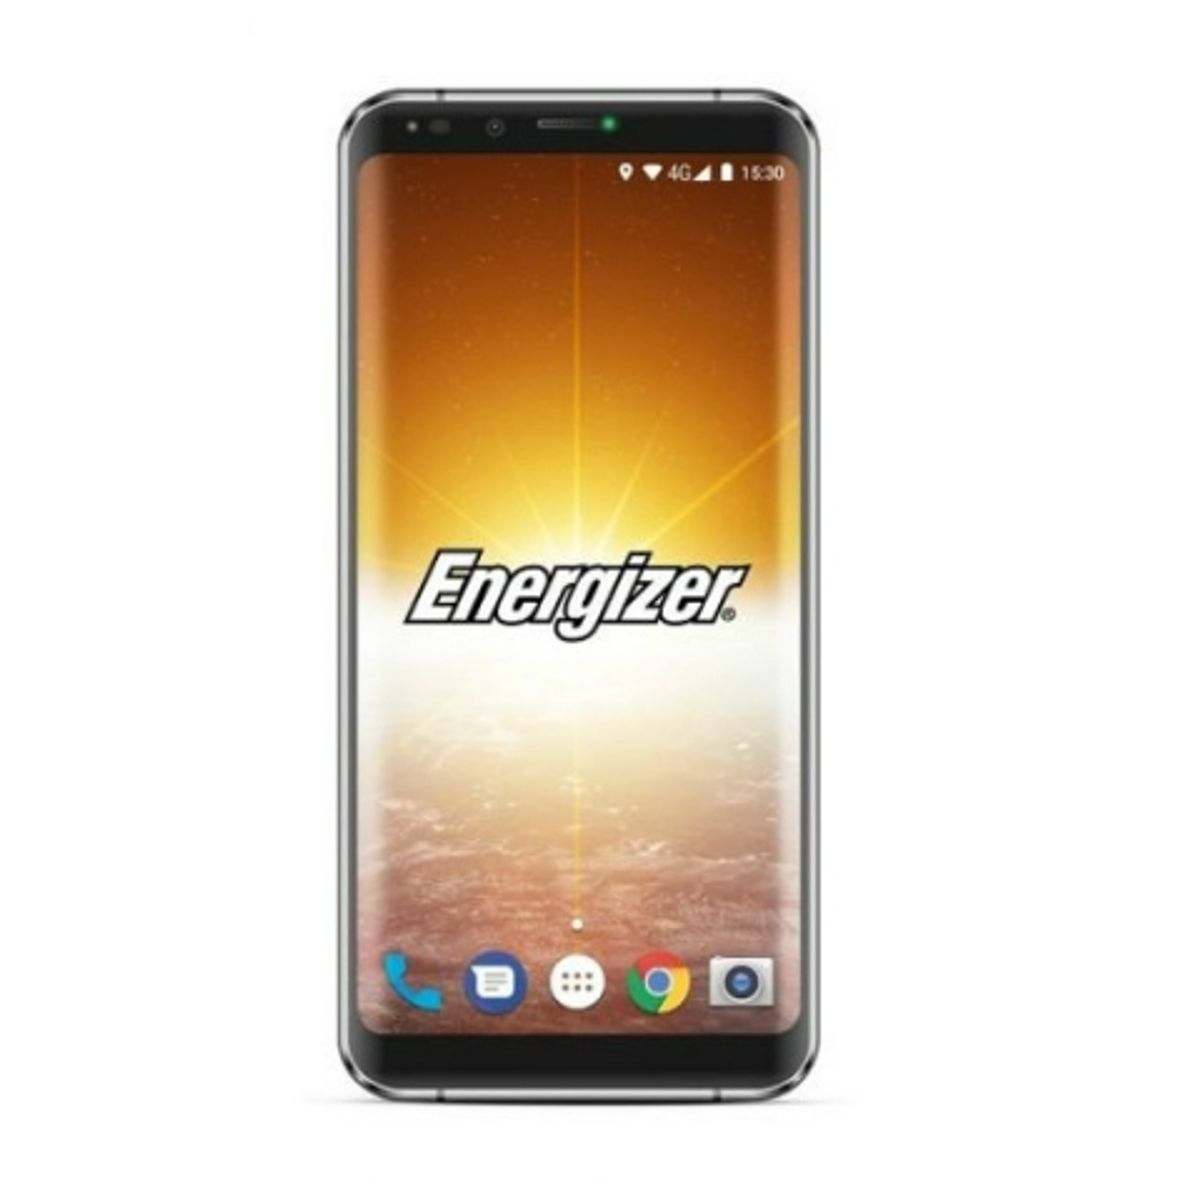 Energizer Power Max P16K Pro launched with 16,000mAh battery